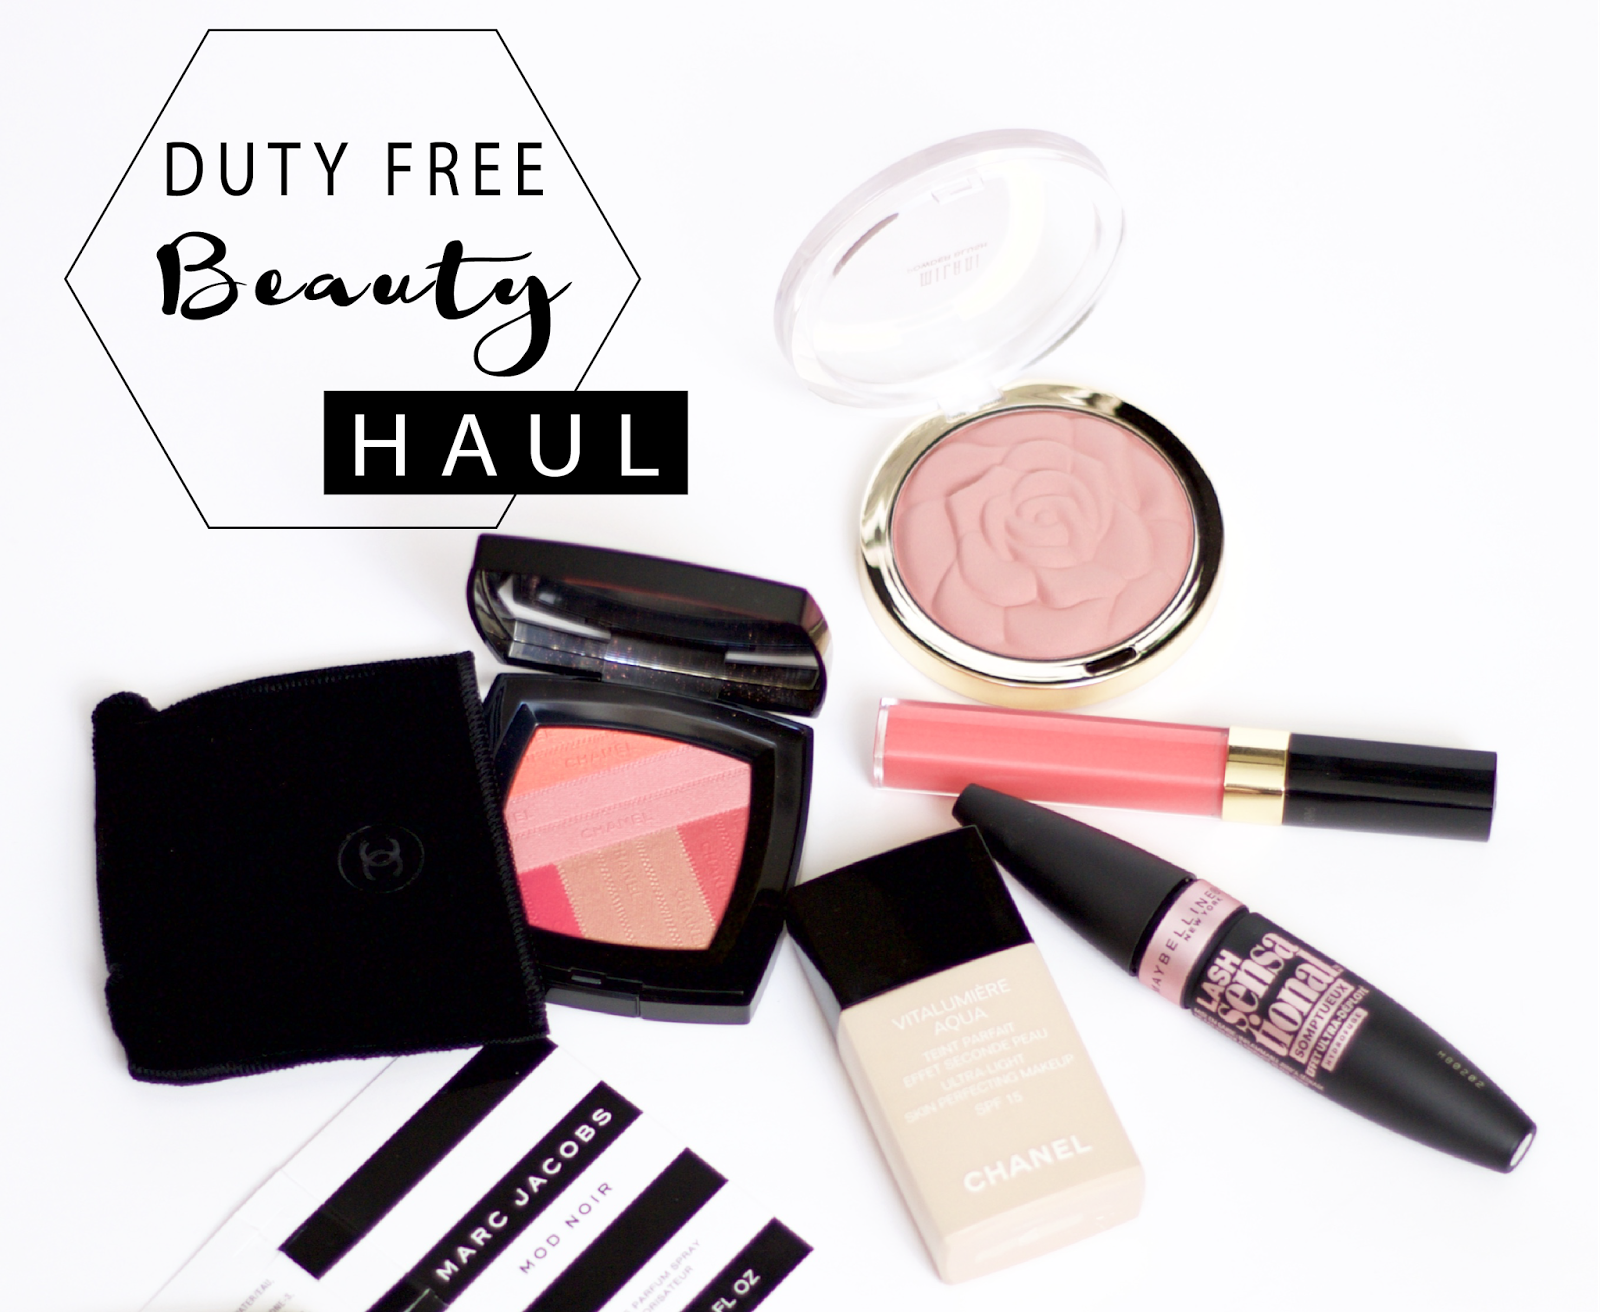 duty-free beauty haul